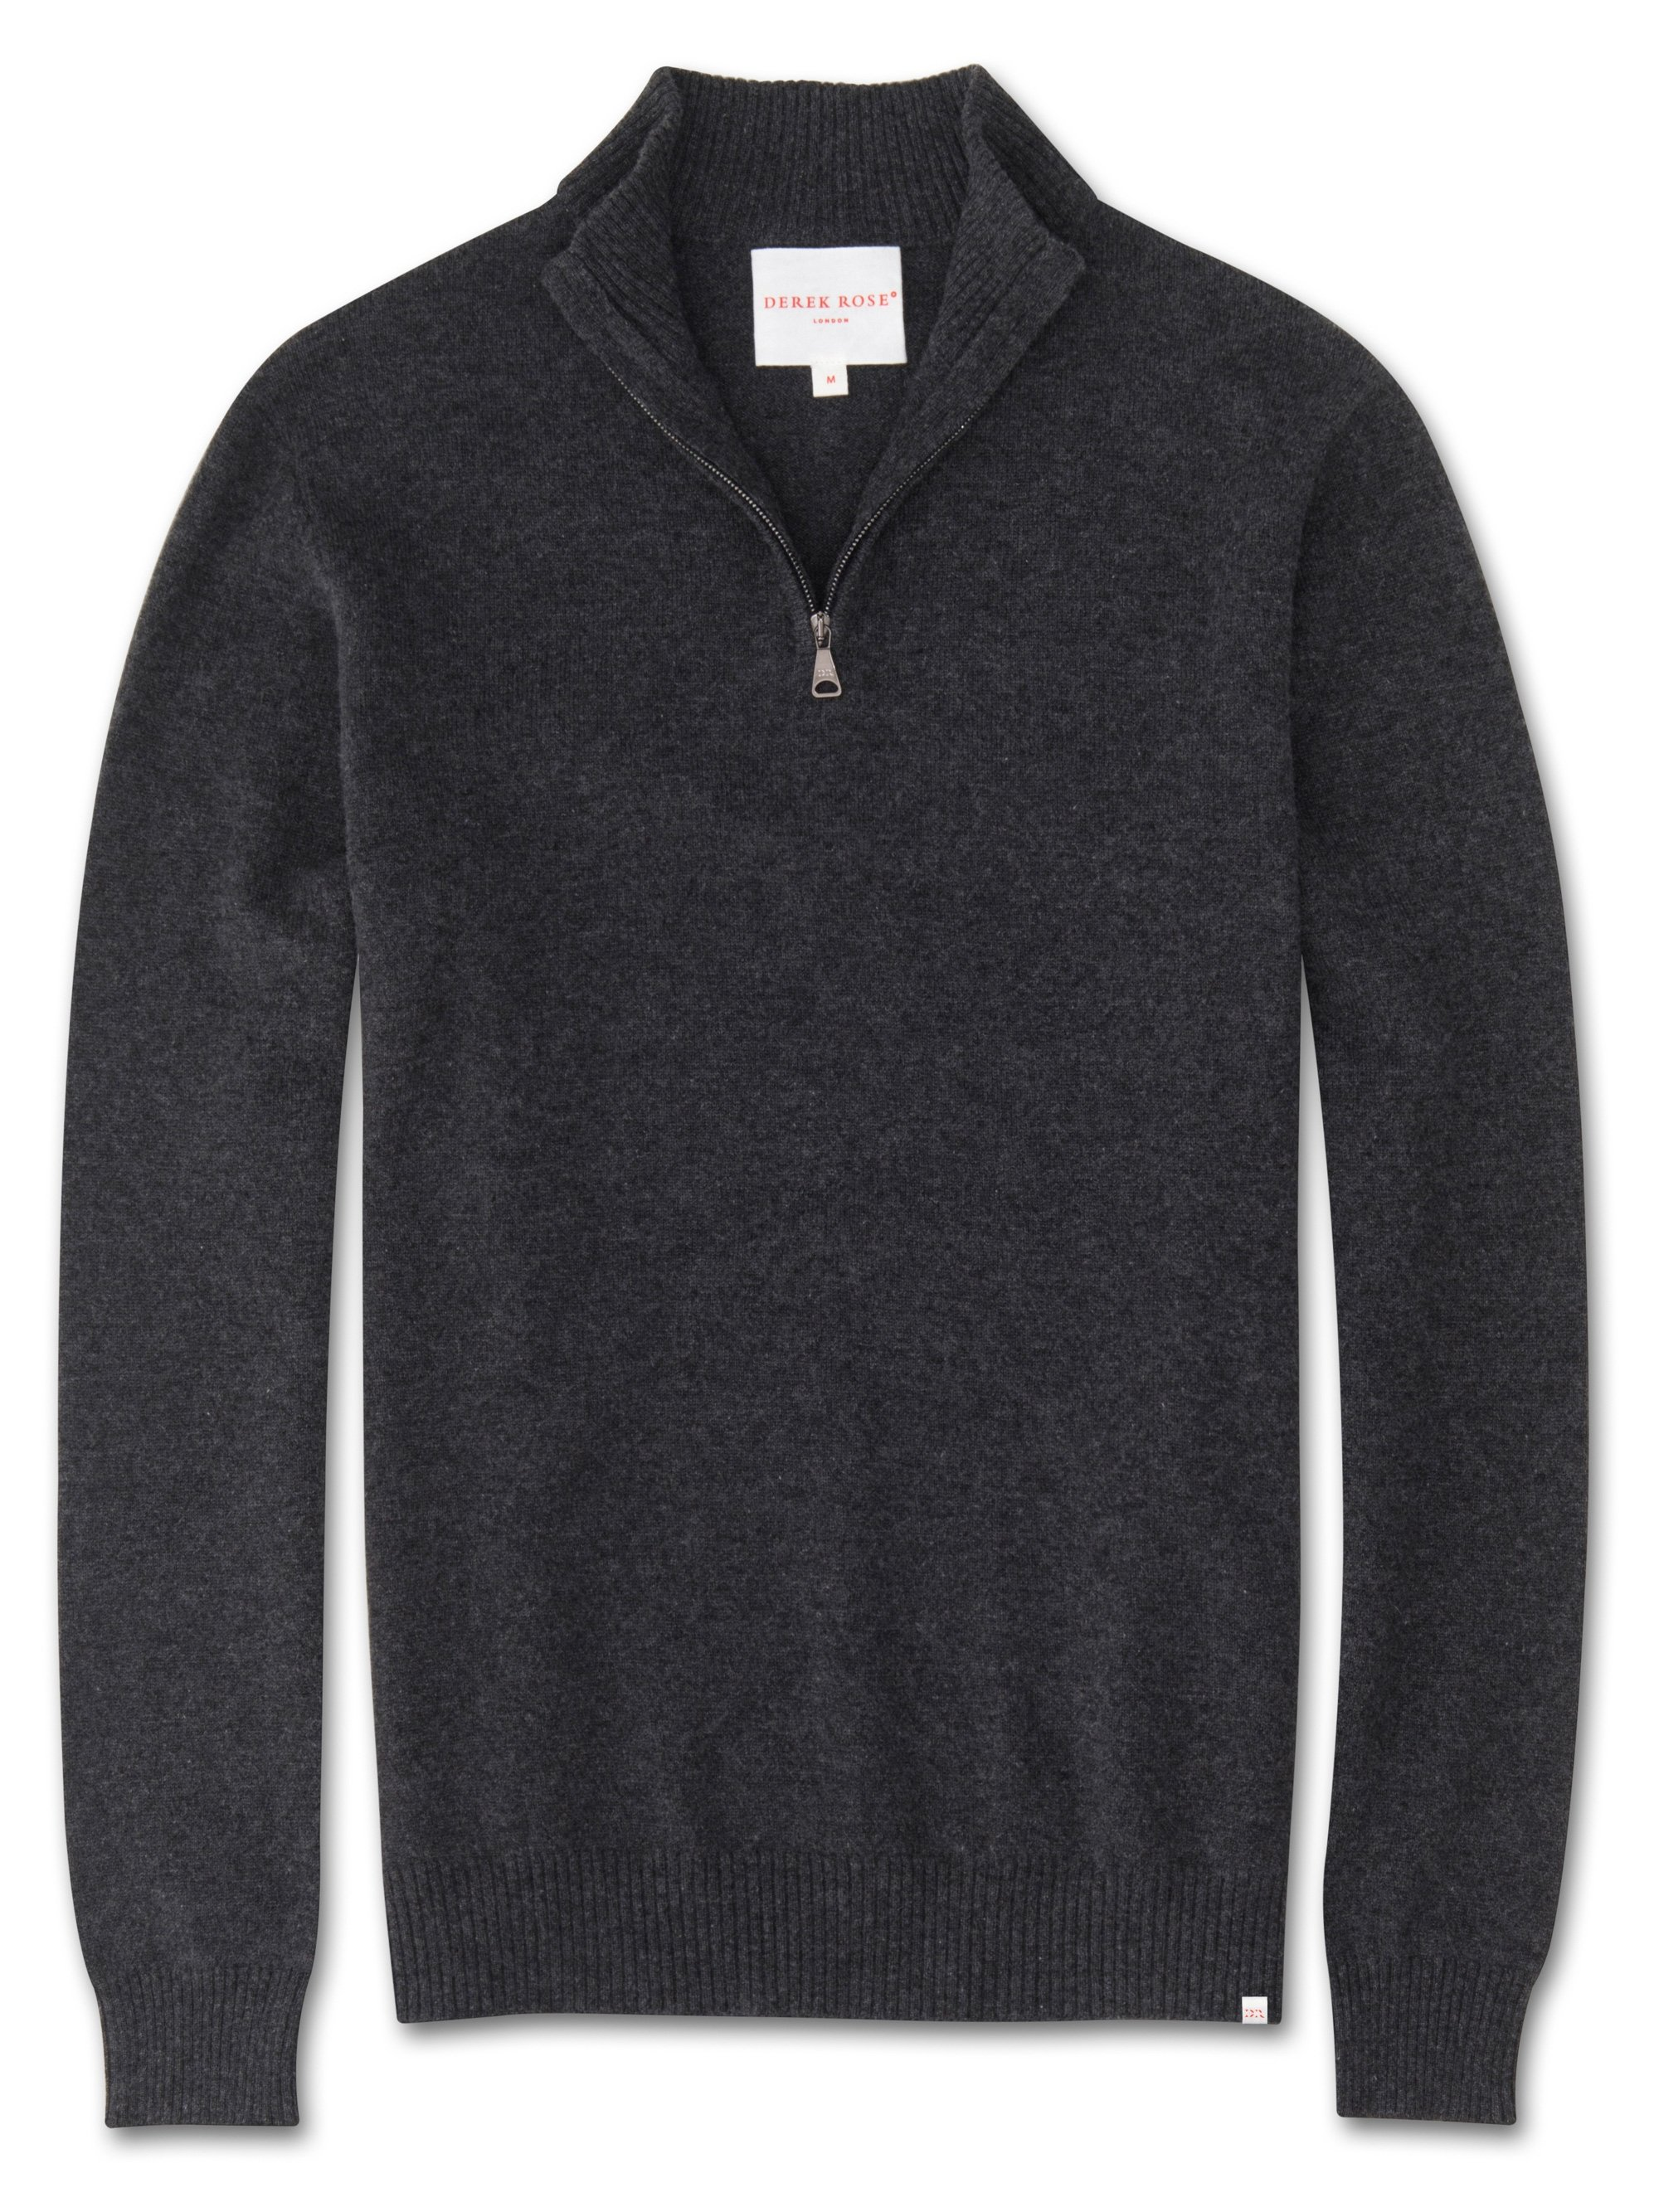 Men's Cashmere Half-Zip Sweater Finley Pure Cashmere Charcoal